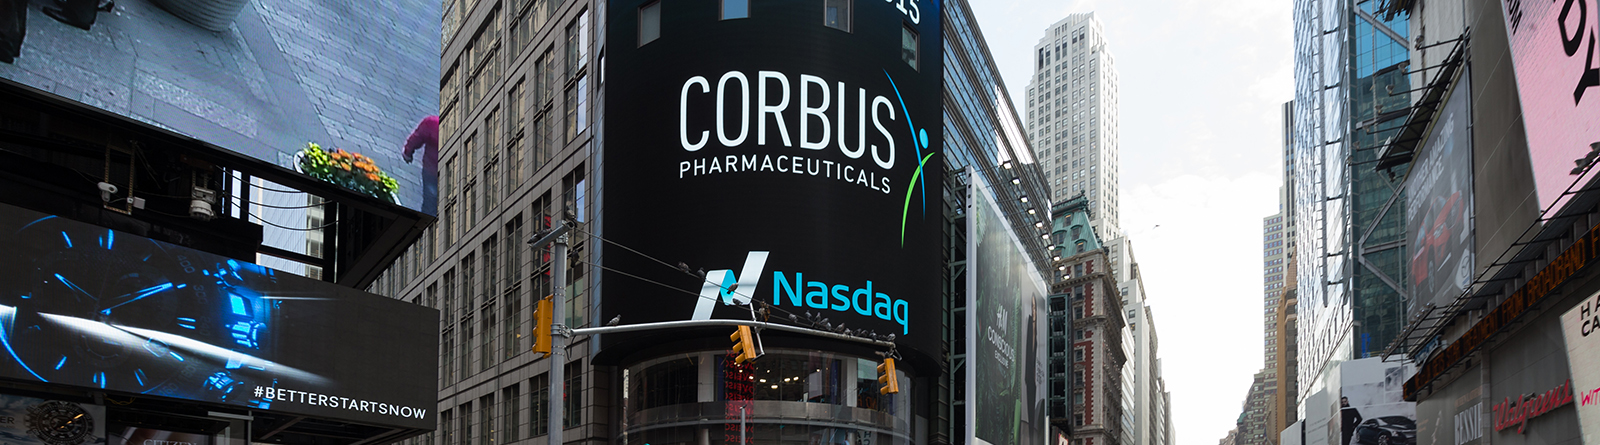 Corbus Pharmaceuticals Reports 2016 First Quarter Financial Results and Provides Business Update Banner